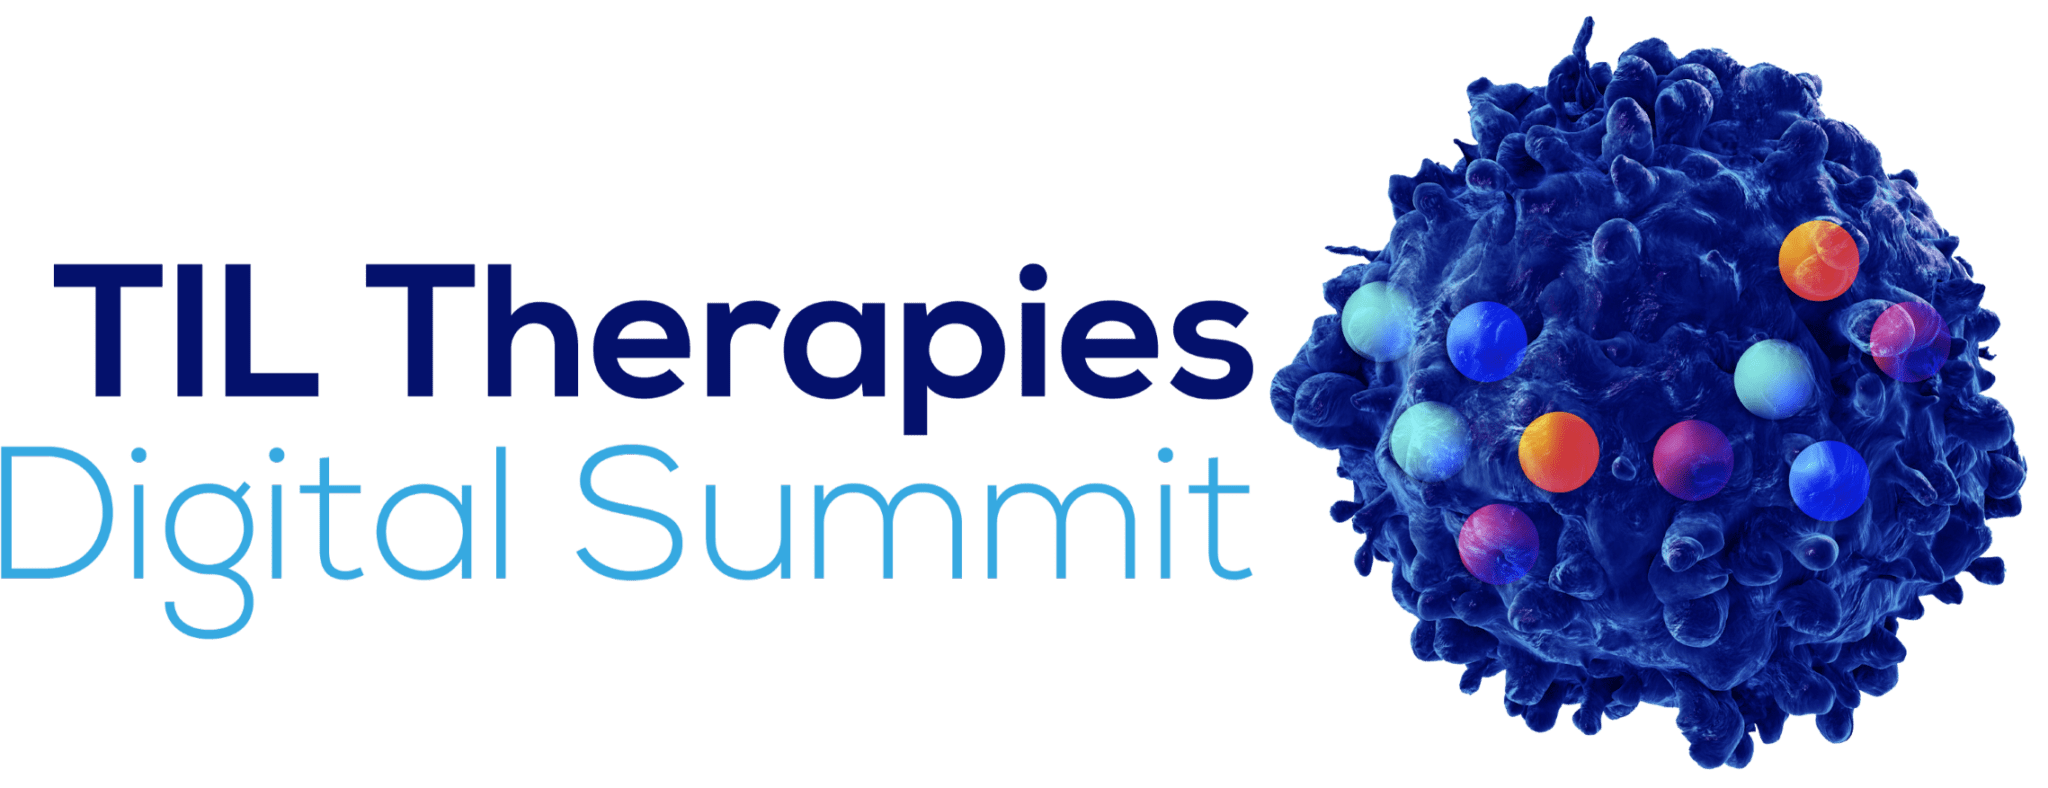 5047_TIL_Therapies_Digital_Summit_Logo_FINAL 2mb